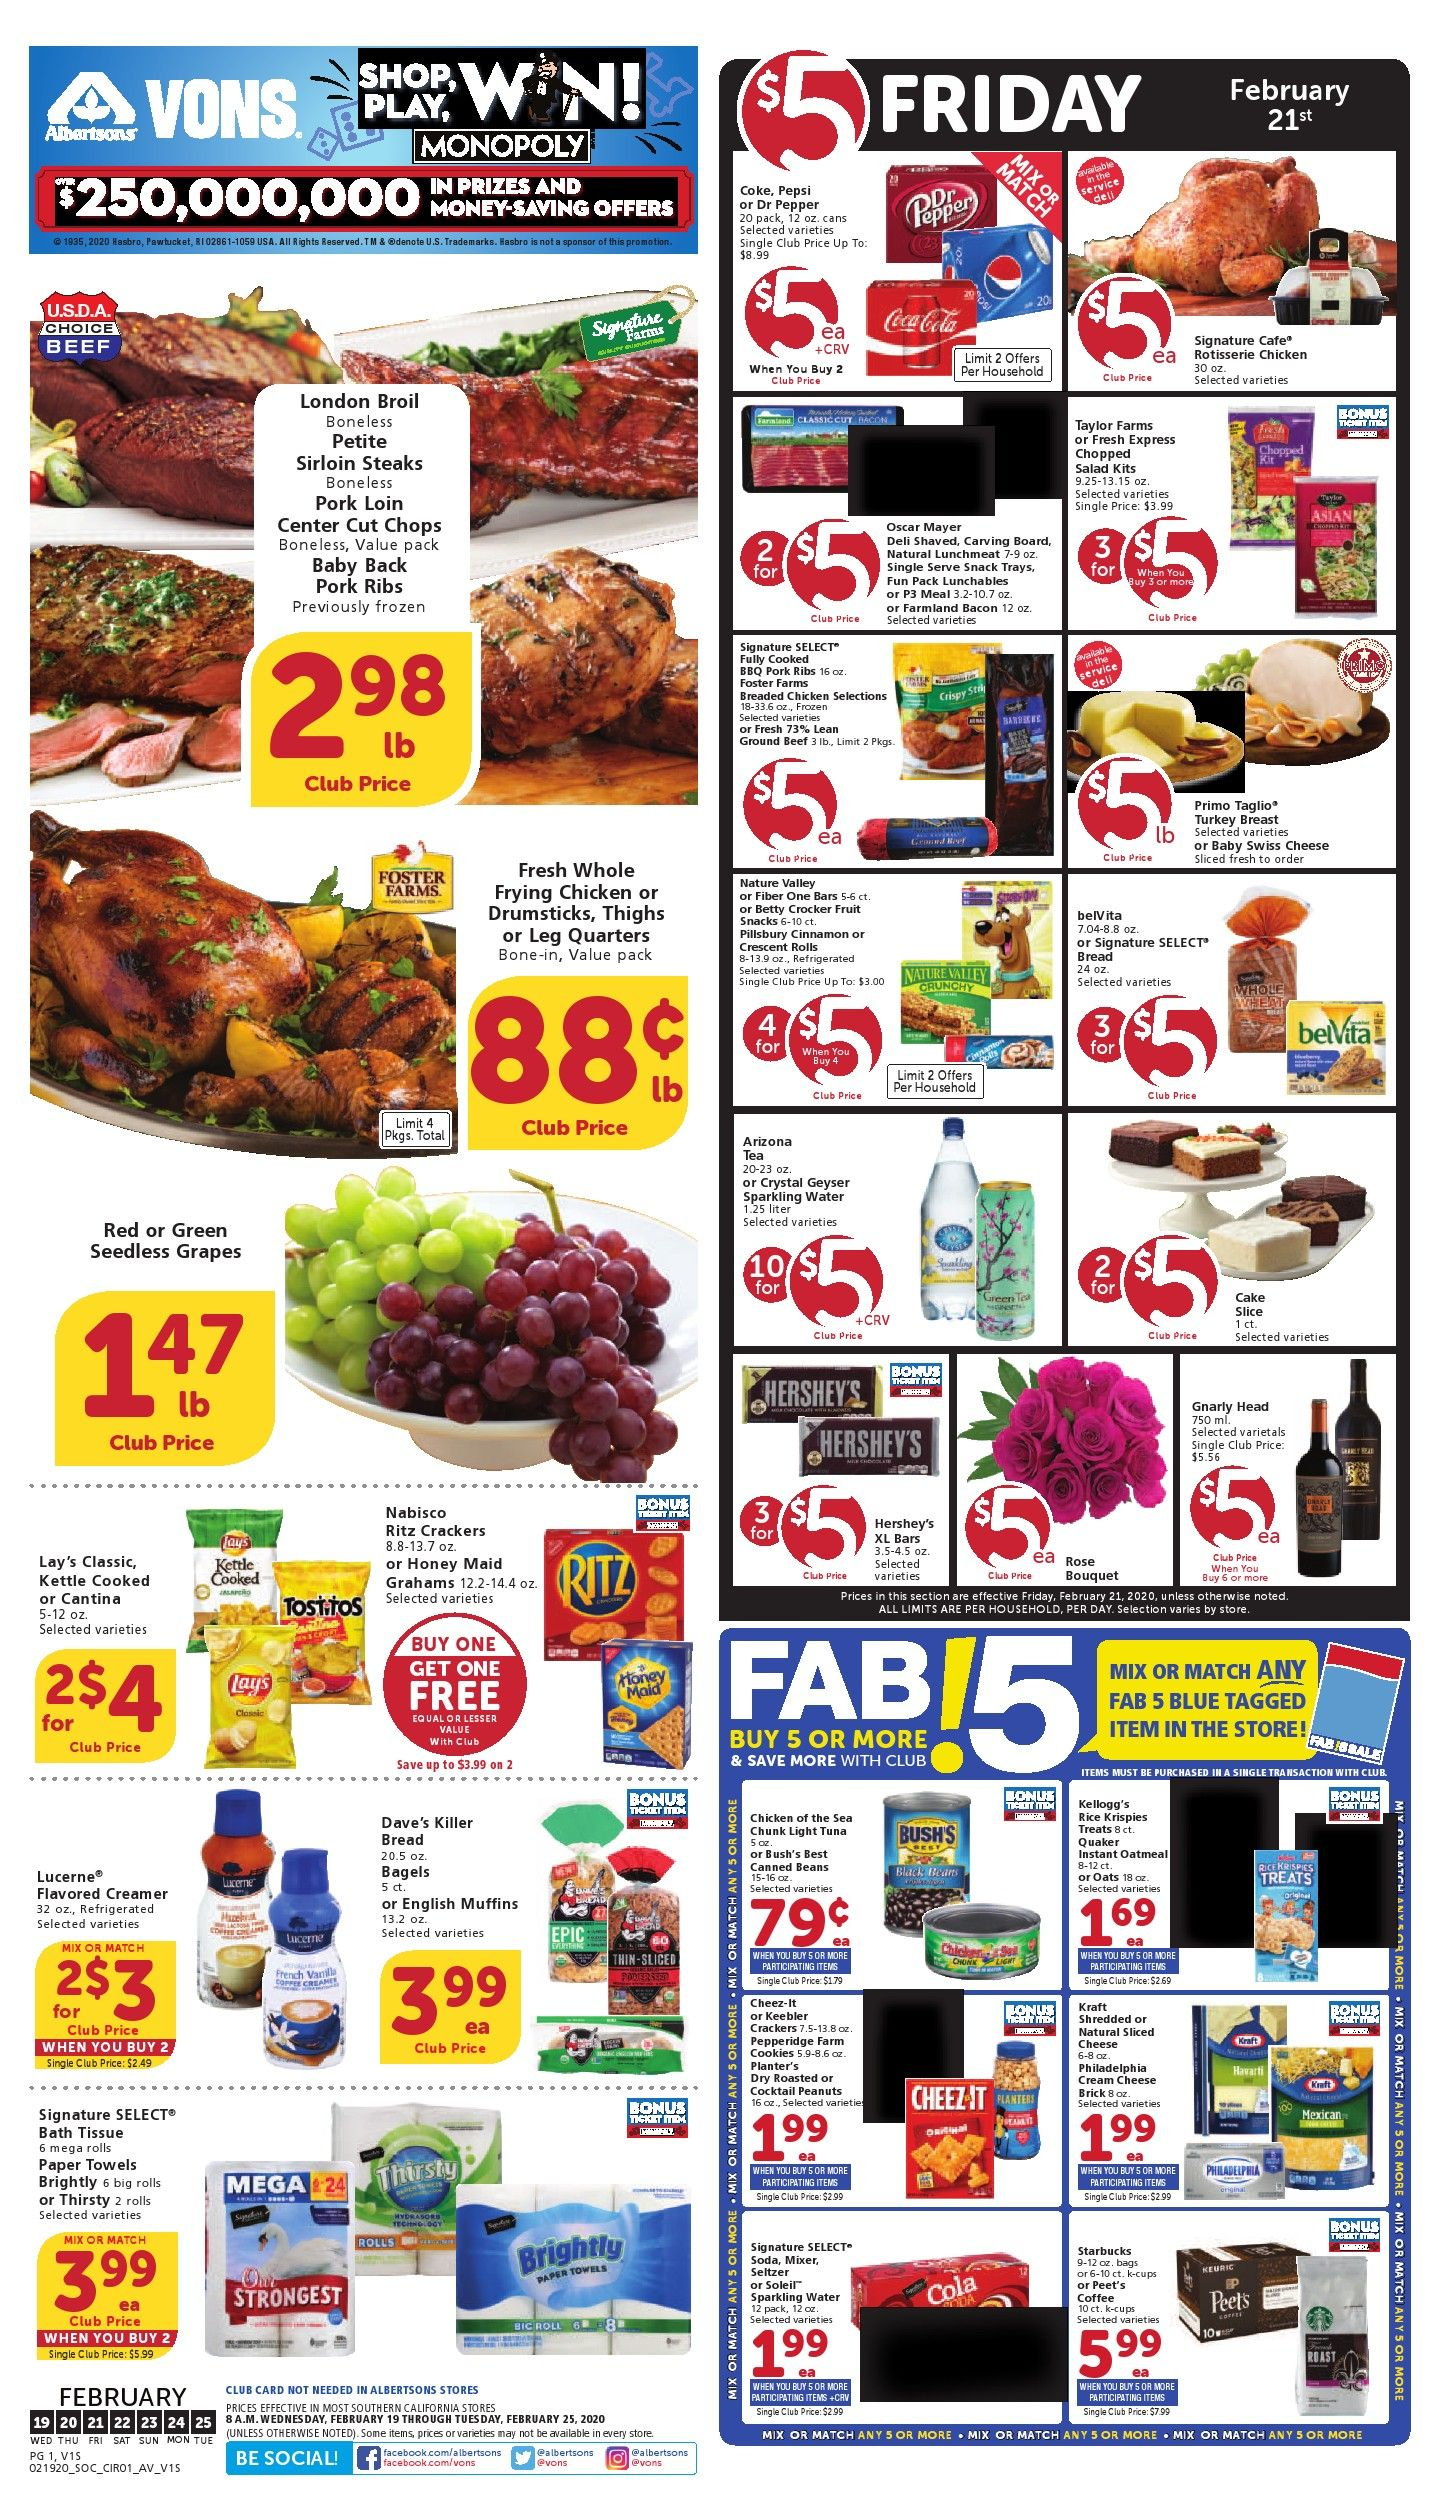 Vons Weekly Ad Flyer 02/26/20 03/03/20 Weekly ads, Ads